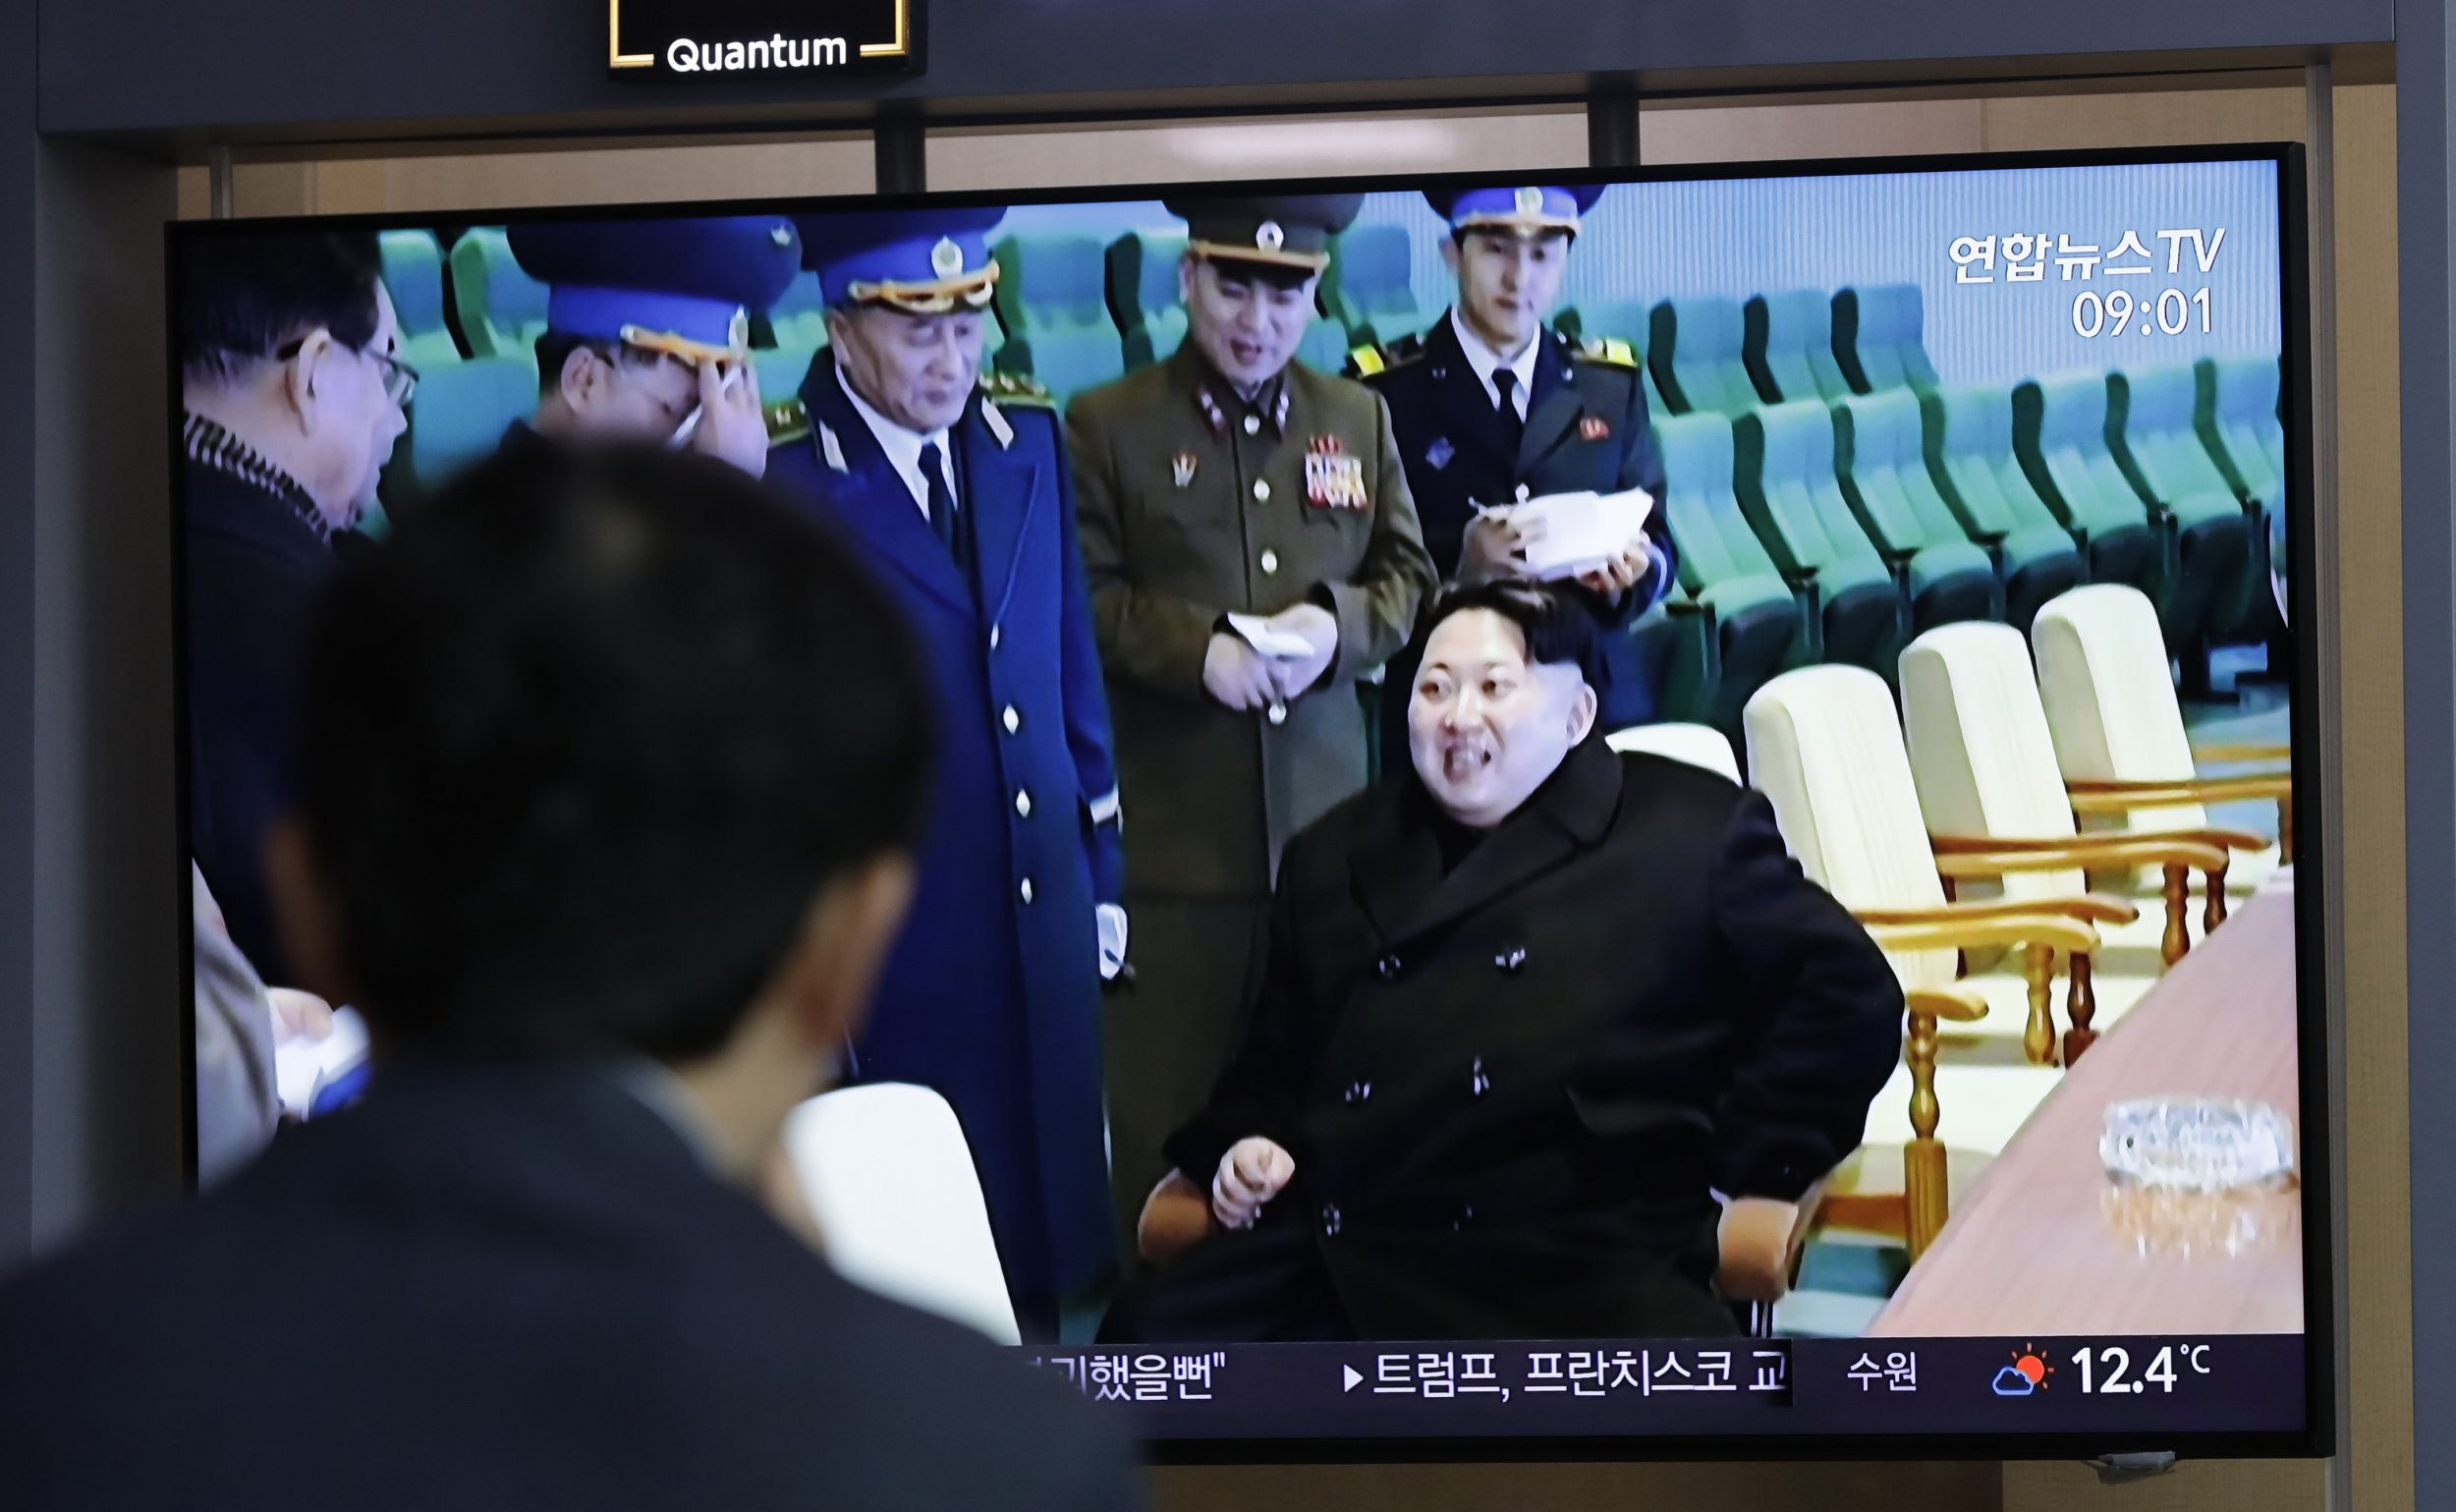 """A man watches a TV news program reporting about North Korea's test-fire of a """"new-type tactical guided weapon,"""" with a footage of North Korean leader Kim Jong Un, at the Seoul Railway Station in Seoul, South Korea, Thursday, April 18, 2019. North Korea has test-fired a """"new-type tactical guided weapon,"""" its state media announced Thursday, in a possible attempt to register displeasure with currently deadlocked nuclear talks with the United States without causing those coveted negotiations to collapse. (AP Photo/Lee Jin-man)"""